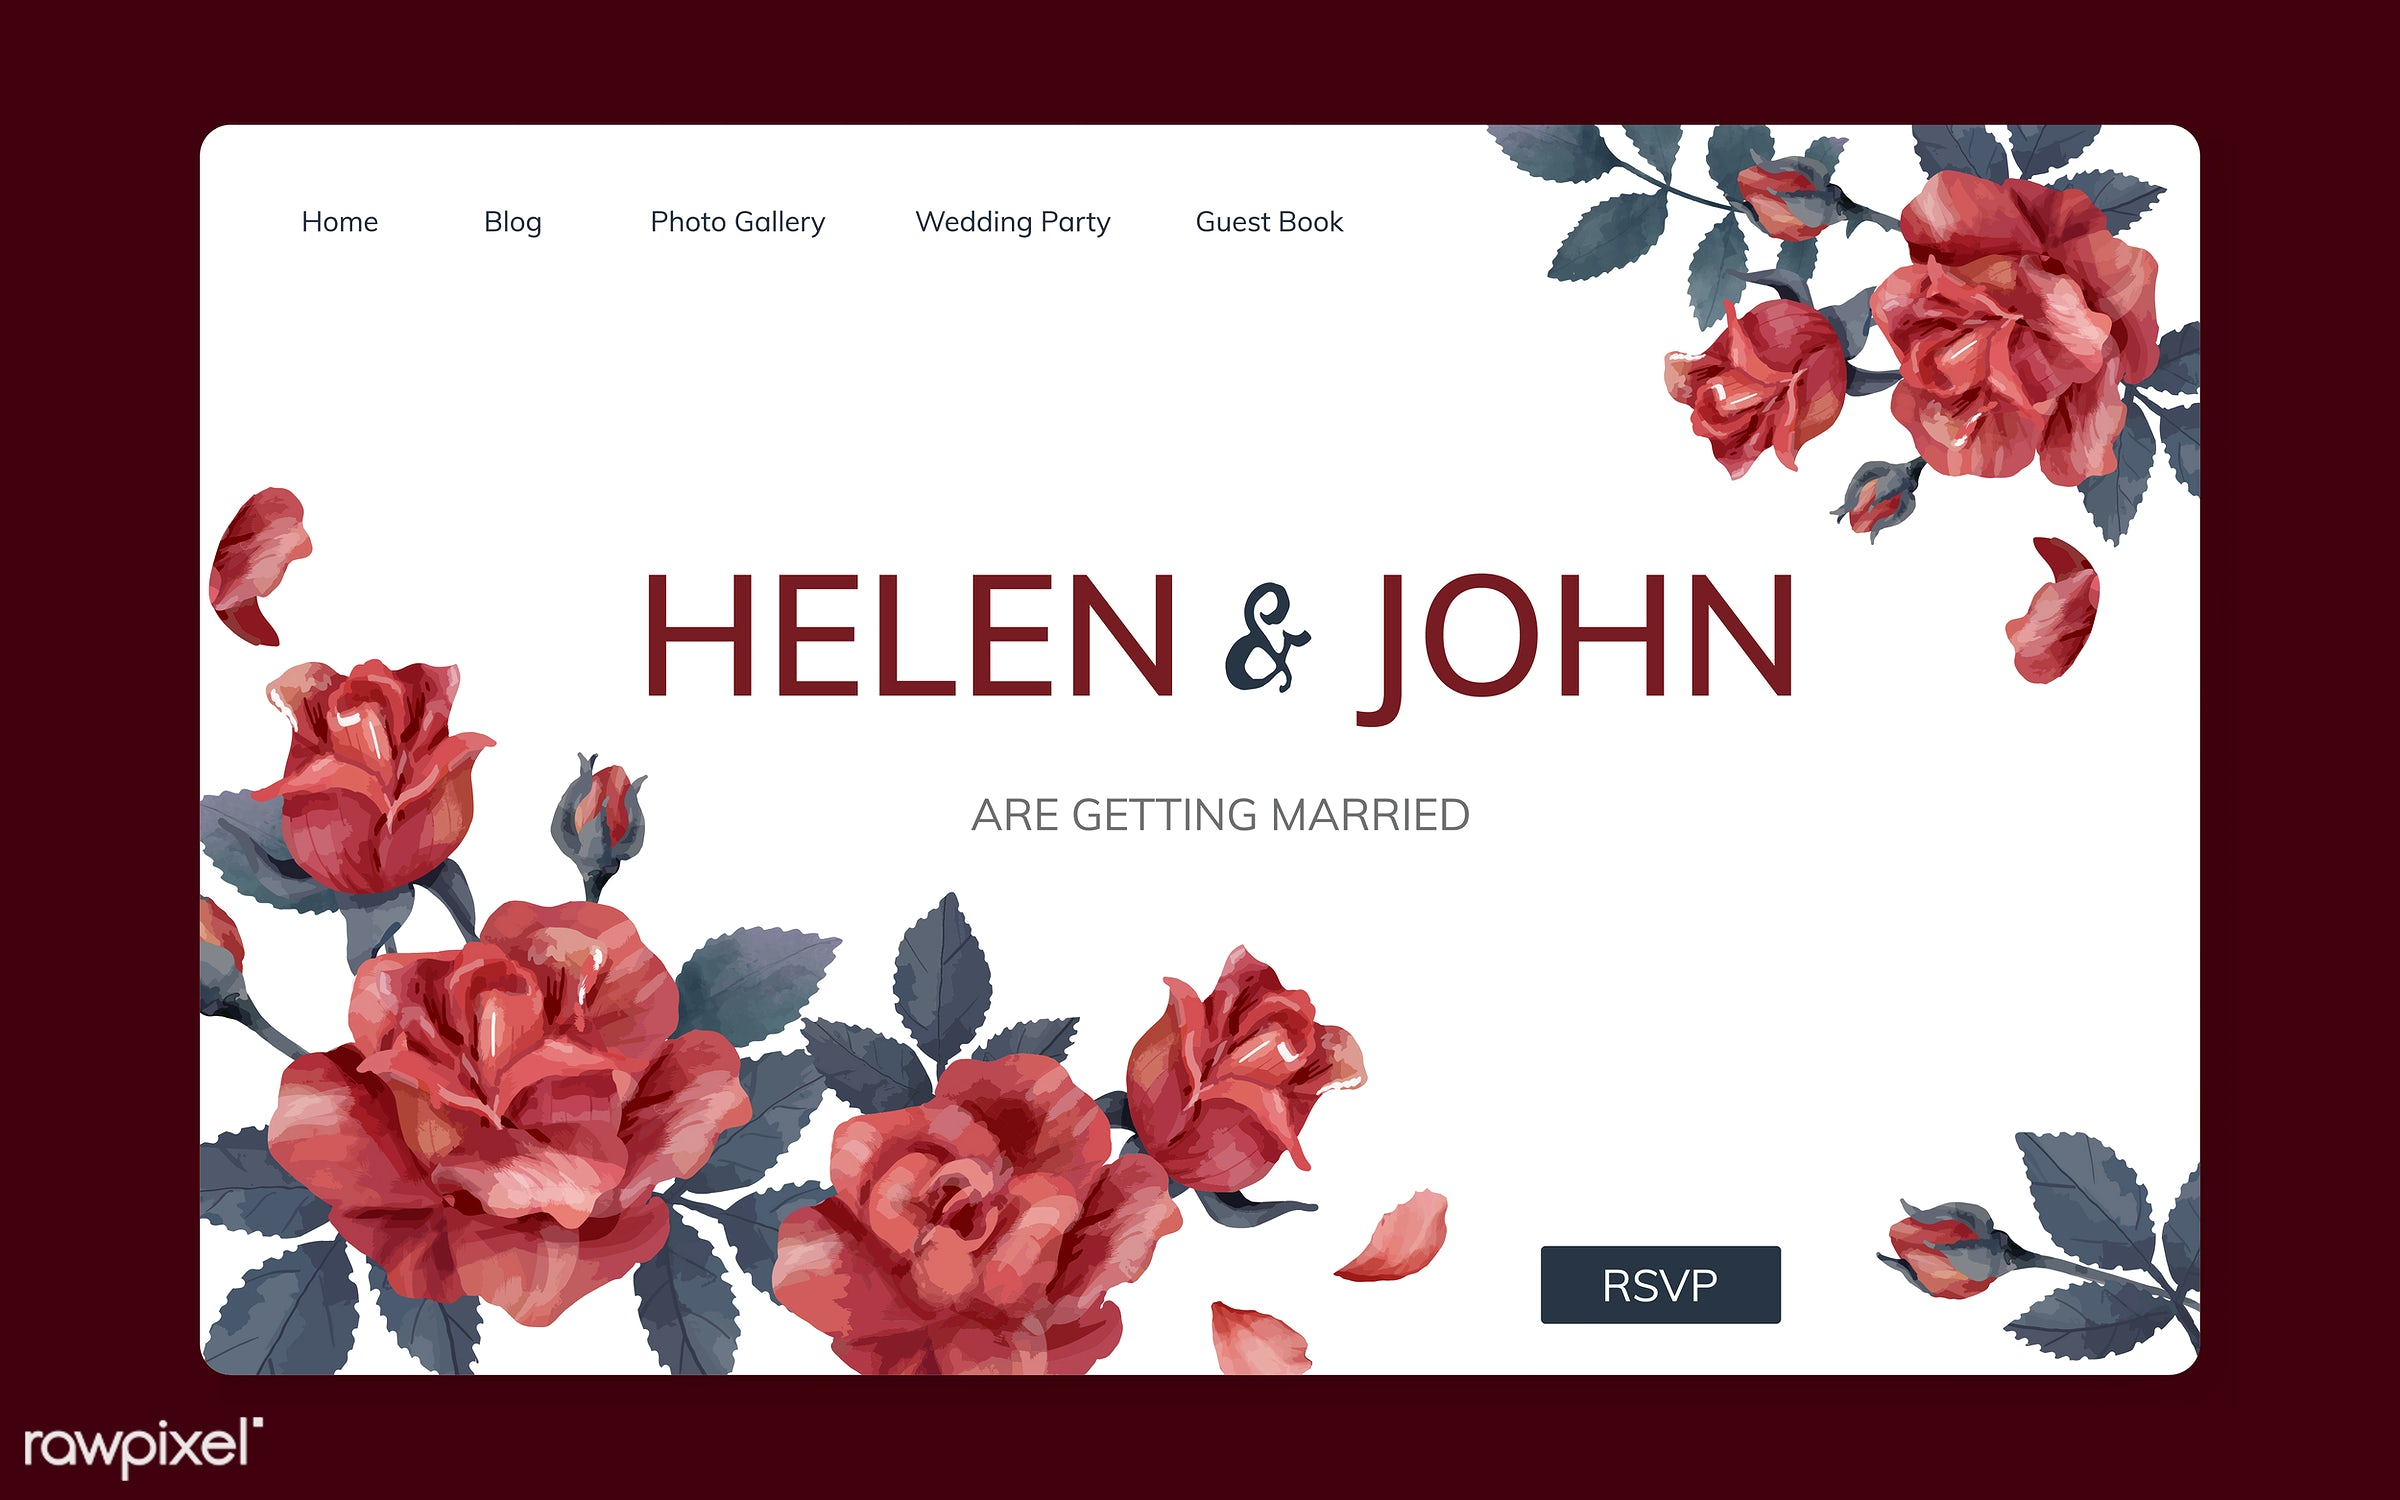 Wedding invitation website with a floral theme - ID: 466684